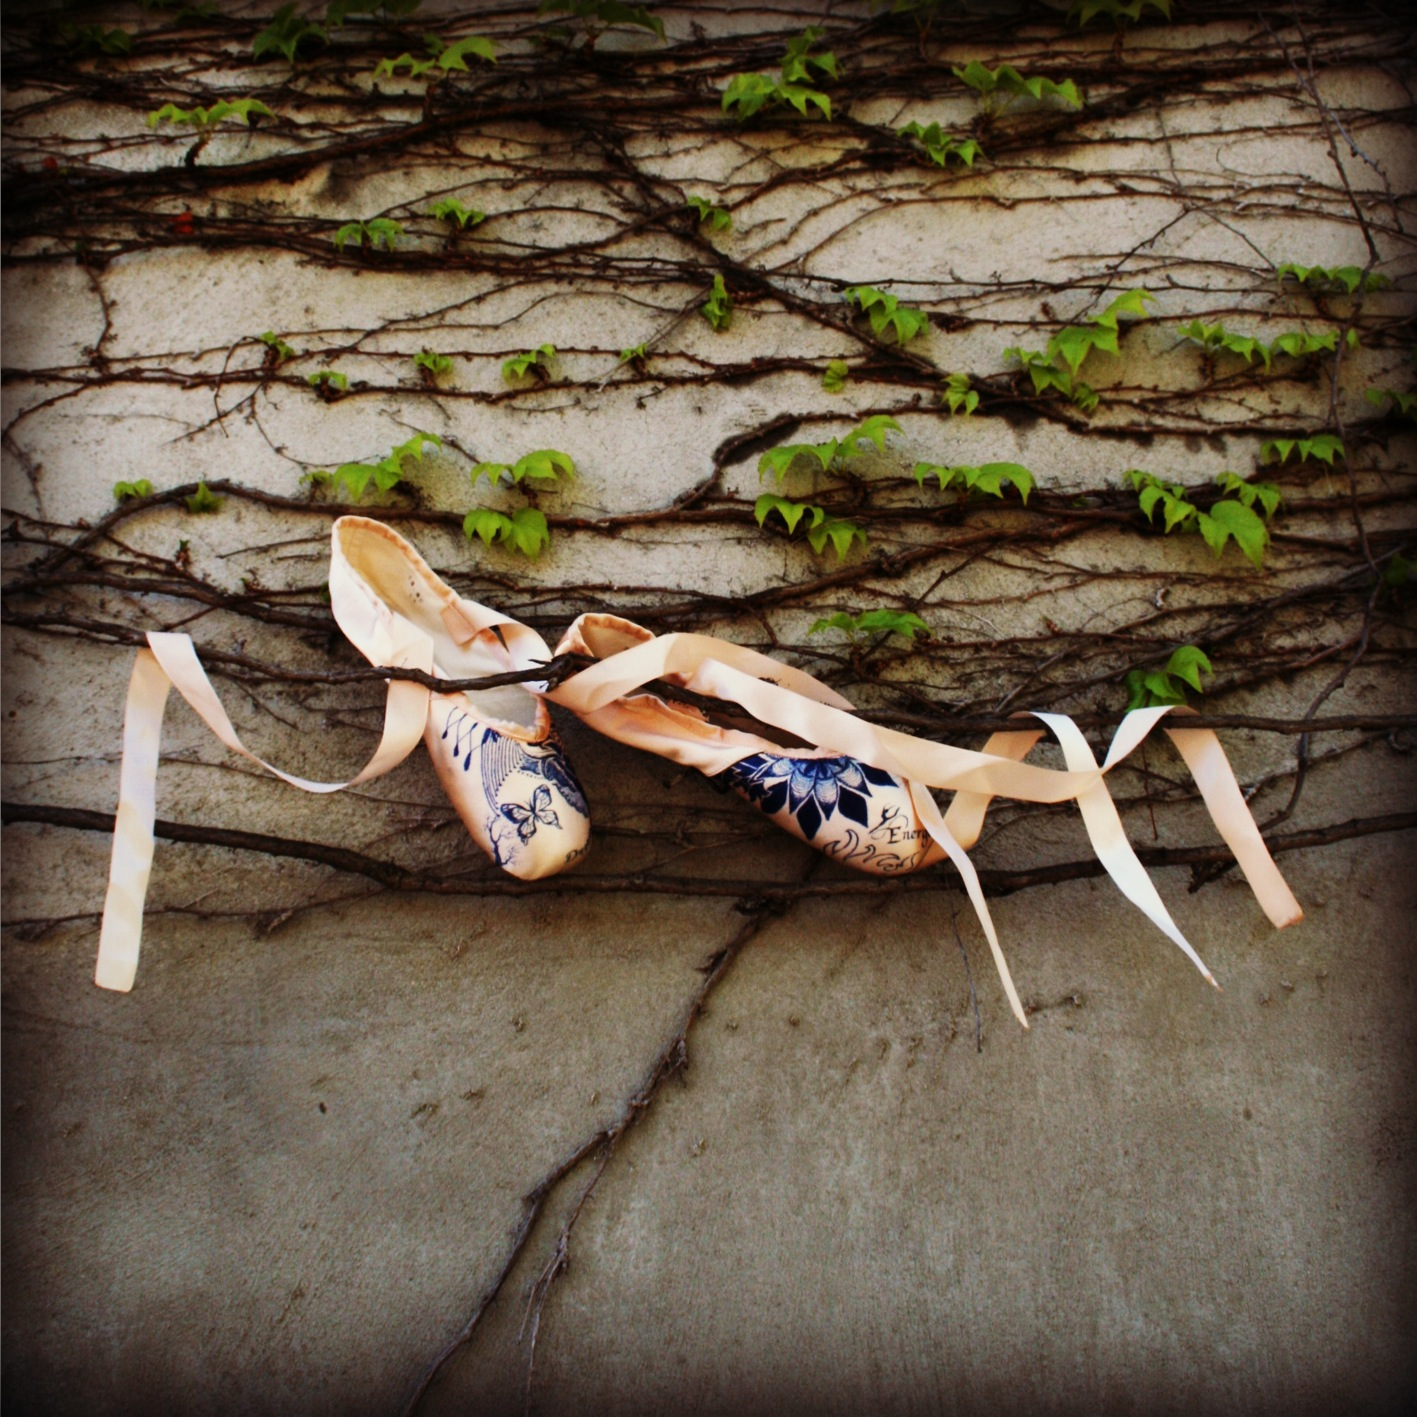 Pointe shoes in leaves3